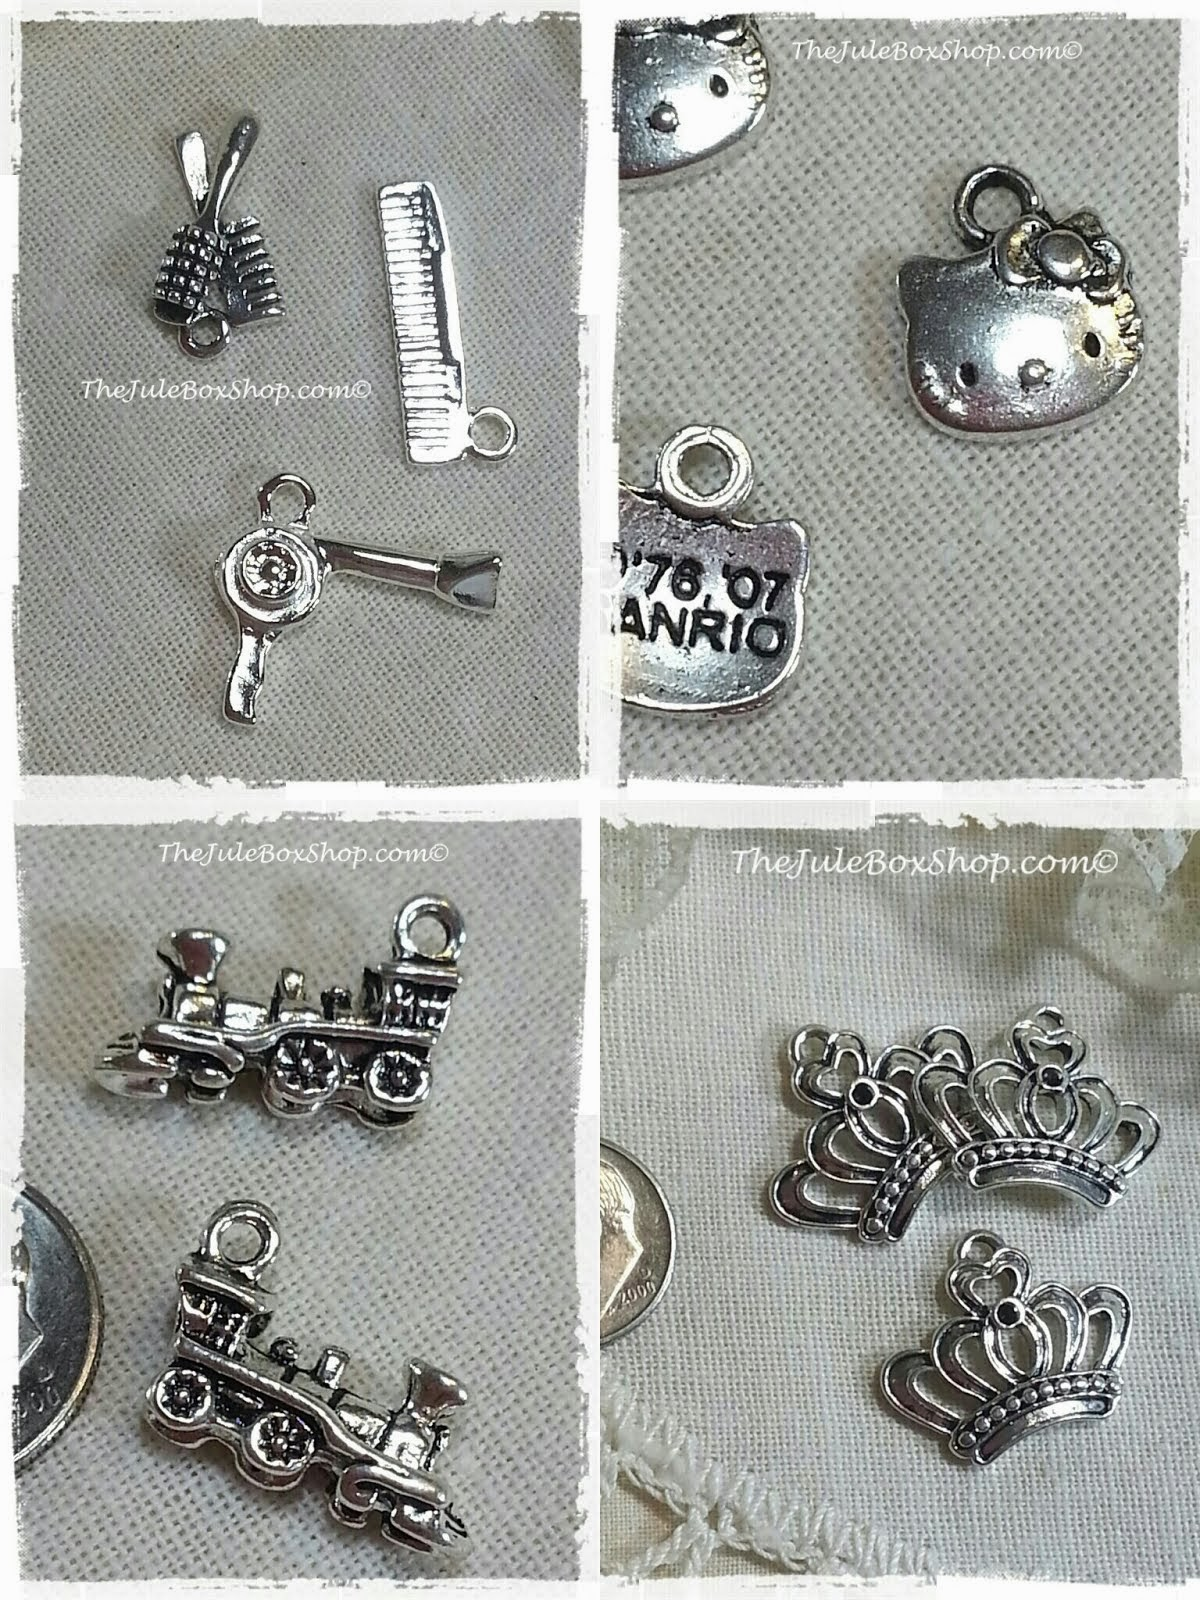 Charms and Buttons!